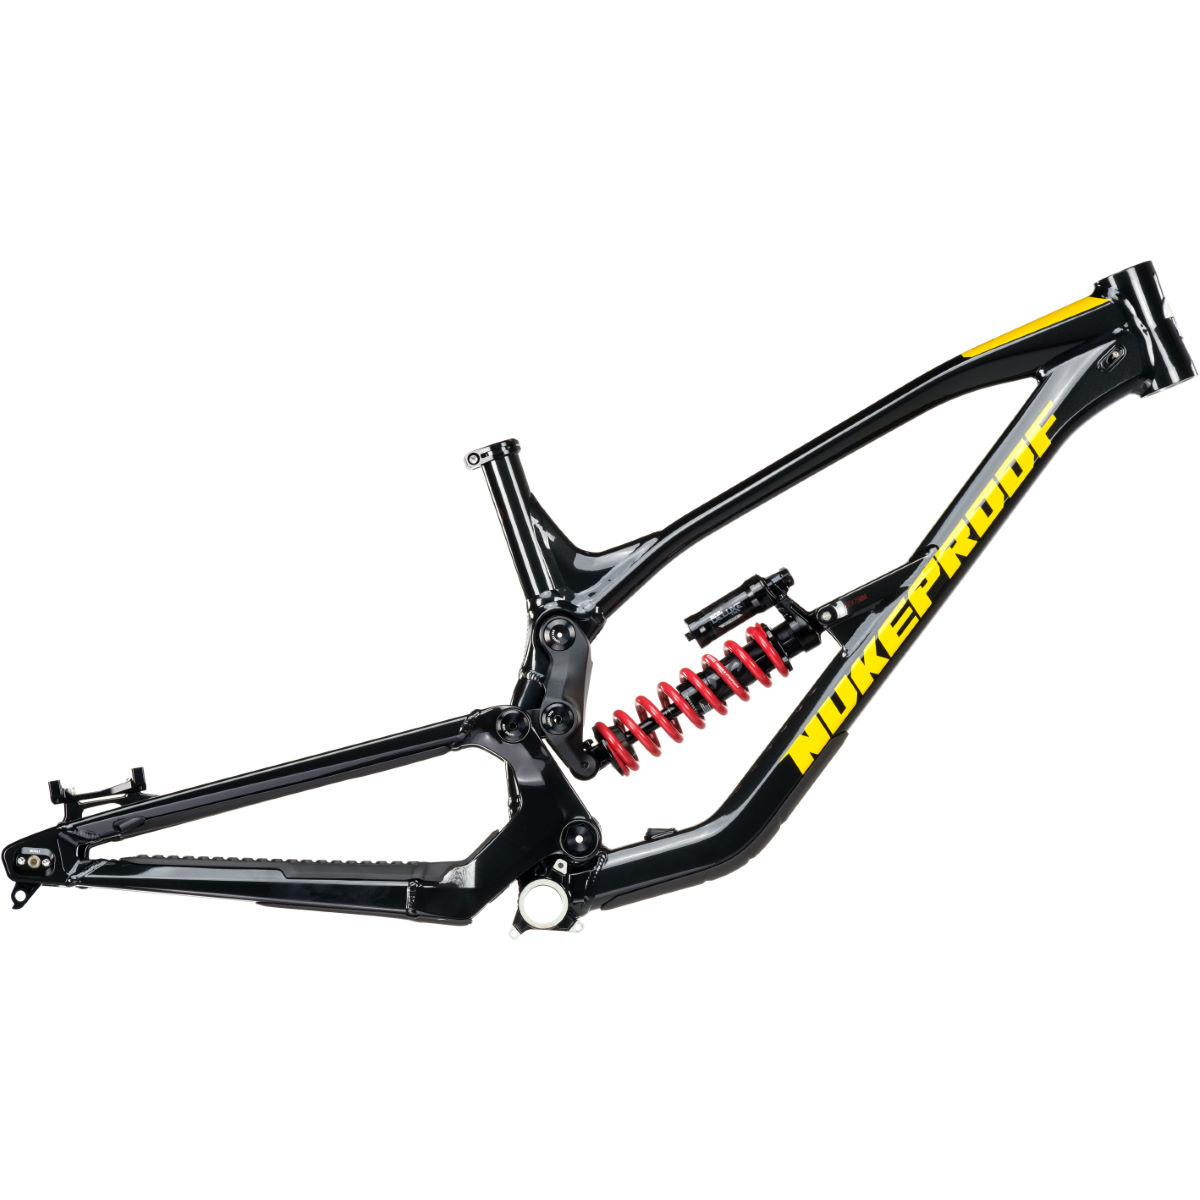 Nukeproof Nukeproof Dissent 275 DH Frame (2020)   Full Sus Mountain Bike Frames